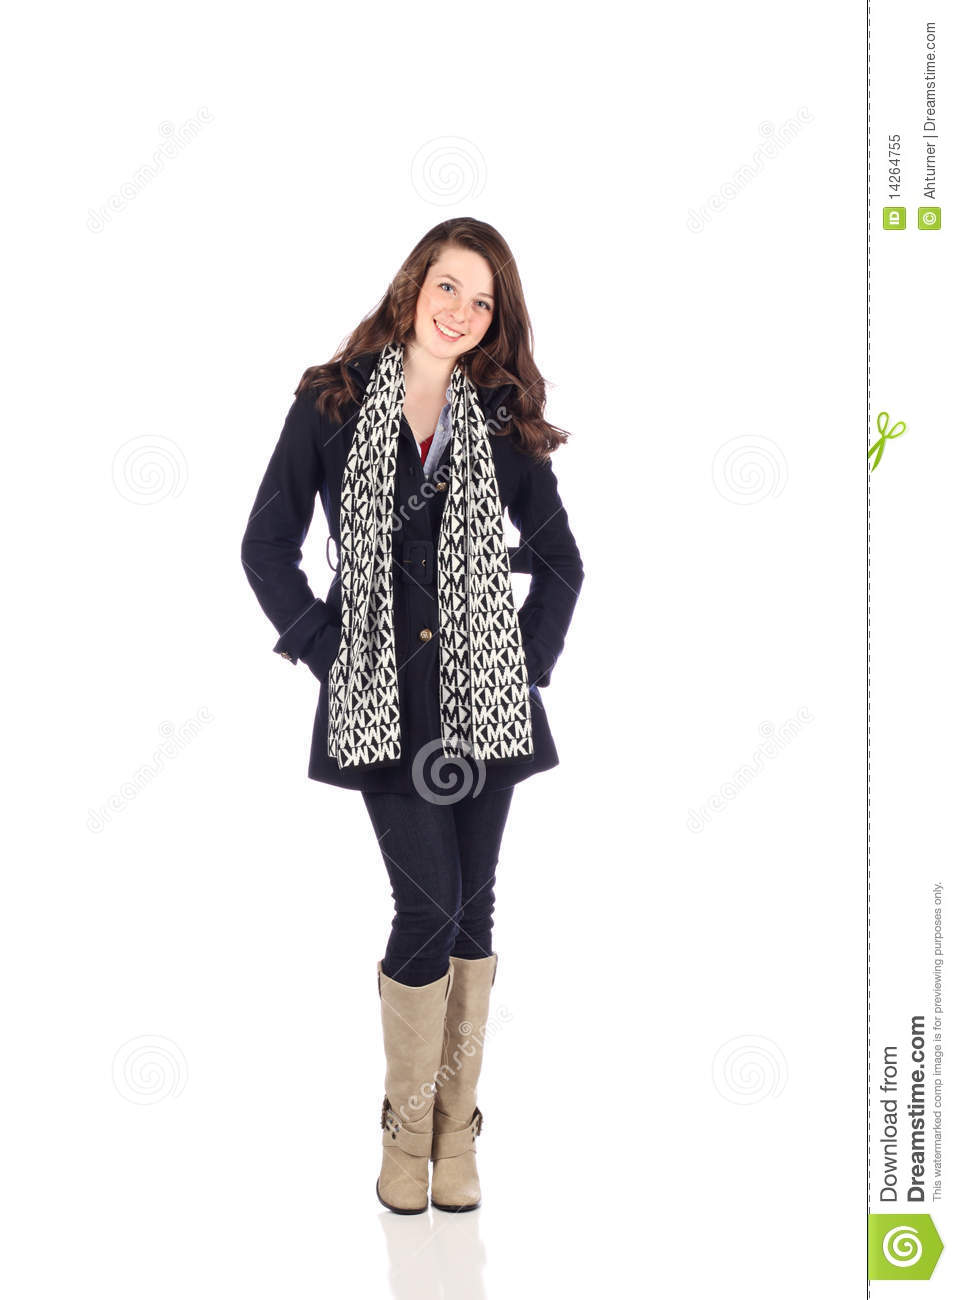 Teen With Good Fashion Sense Royalty Free Stock Photo